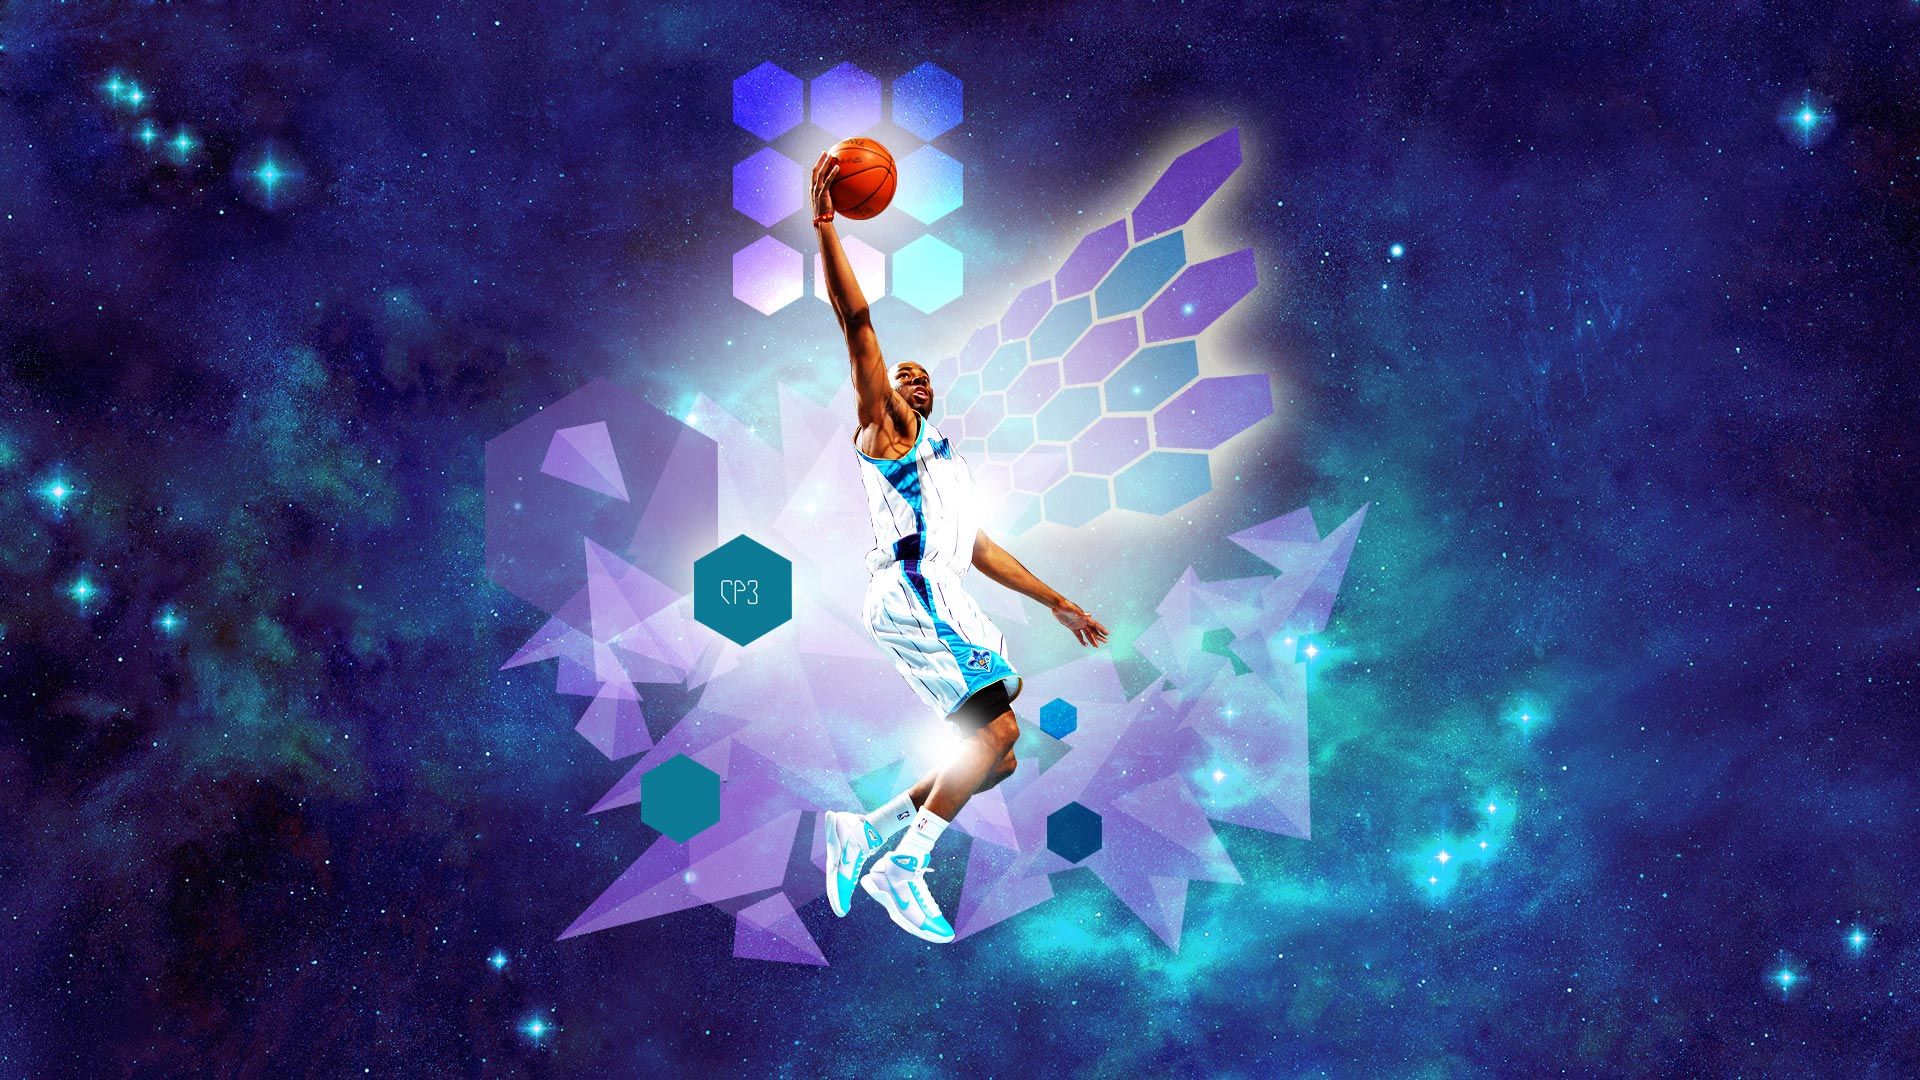 Cool Nba Wallpapers Release date Specs Review Redesign and Price 1920x1080